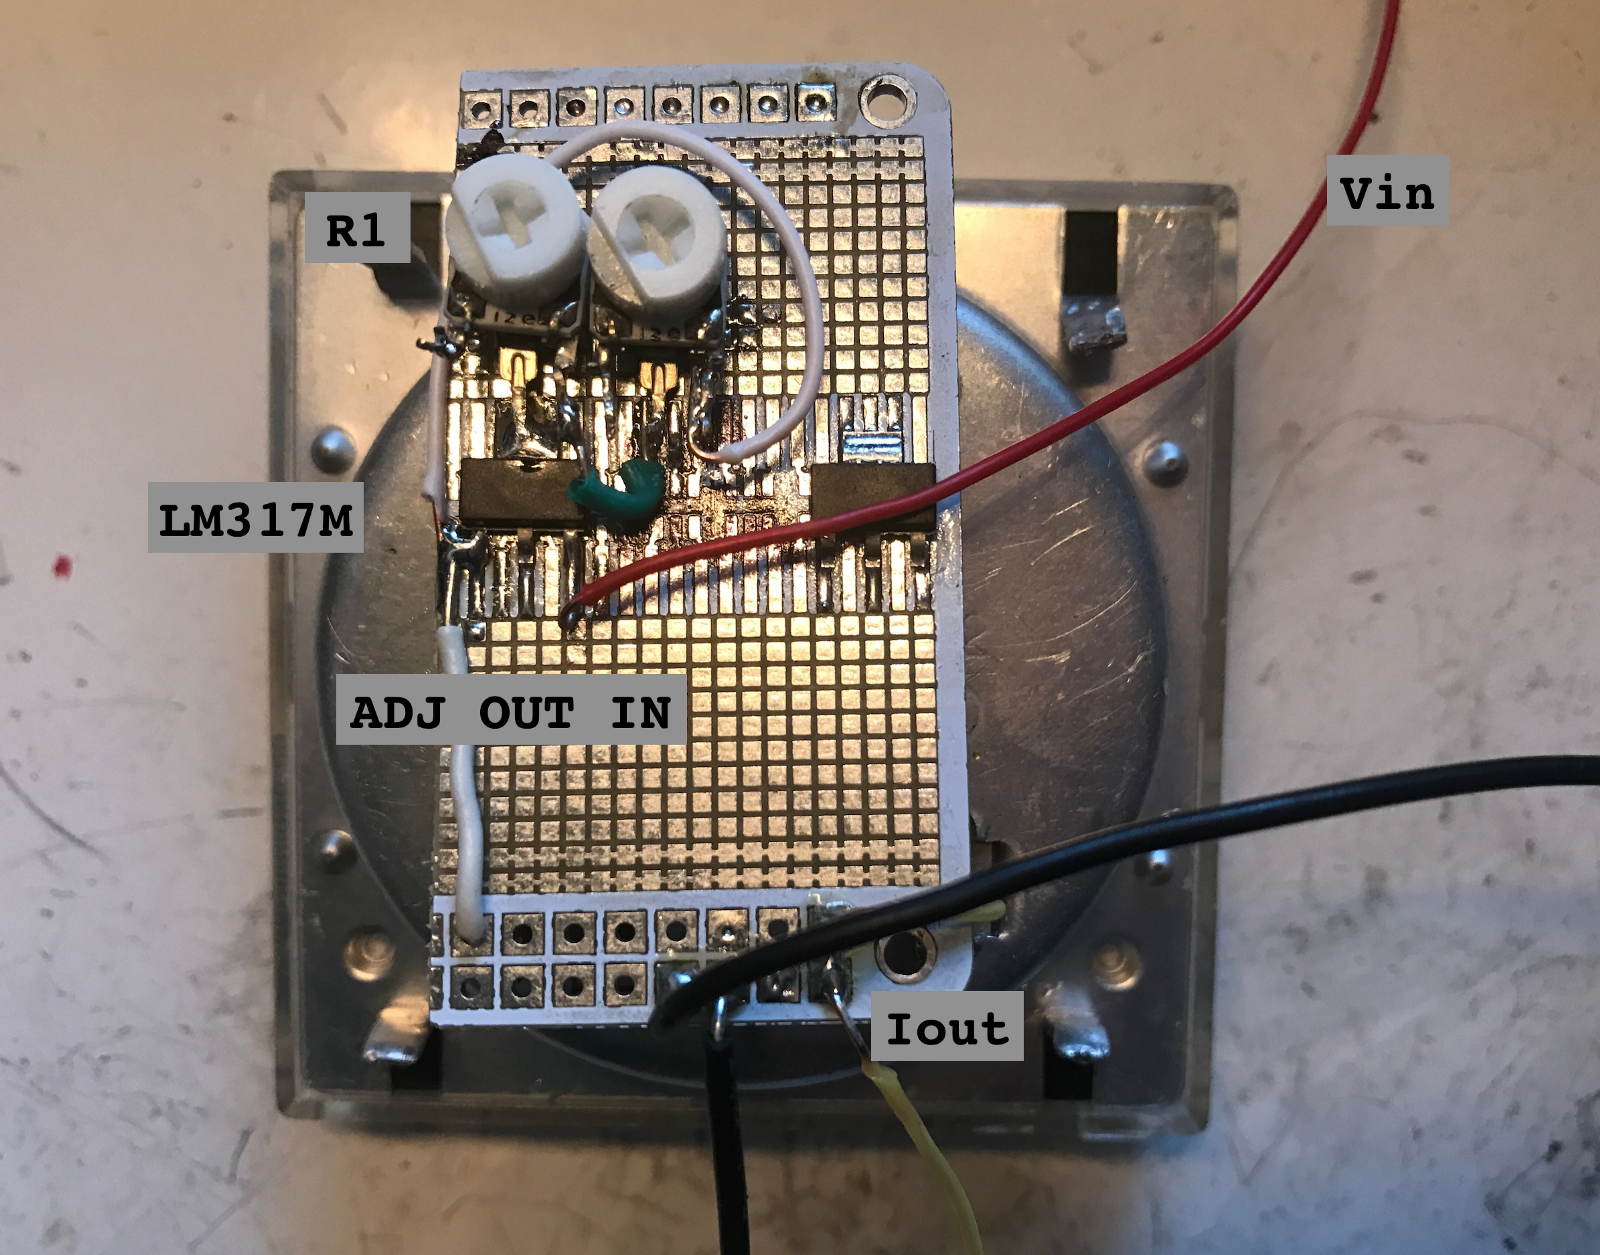 Voltage Regulators Revisted Lm317m 7812 Mcp170x Mic5219 And Icl7660 Regulator Adjustable Explanation Circuit Electronic Circuits Wired An Ammeter In Series With The Constant Current Output Although Range Of Is Too Great For It To Be Much Use What I Had Todo